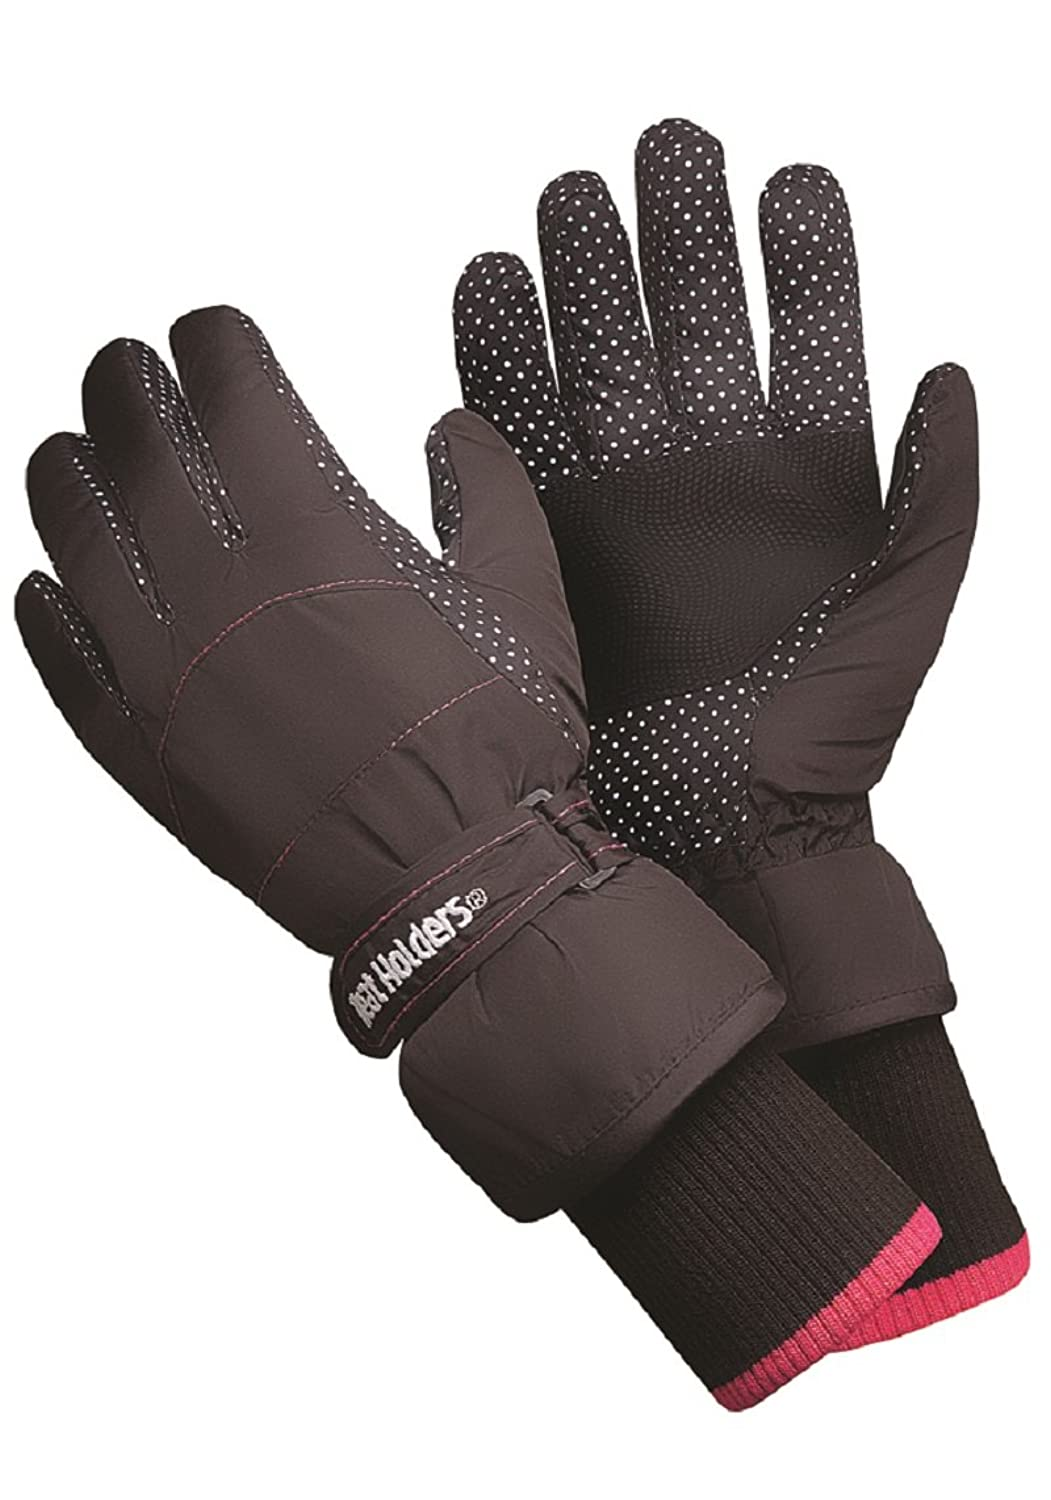 Damen Wärme Holders Wärme Weaver thermische warme Winter Skihandschuhe TOG 2.3 schwarz